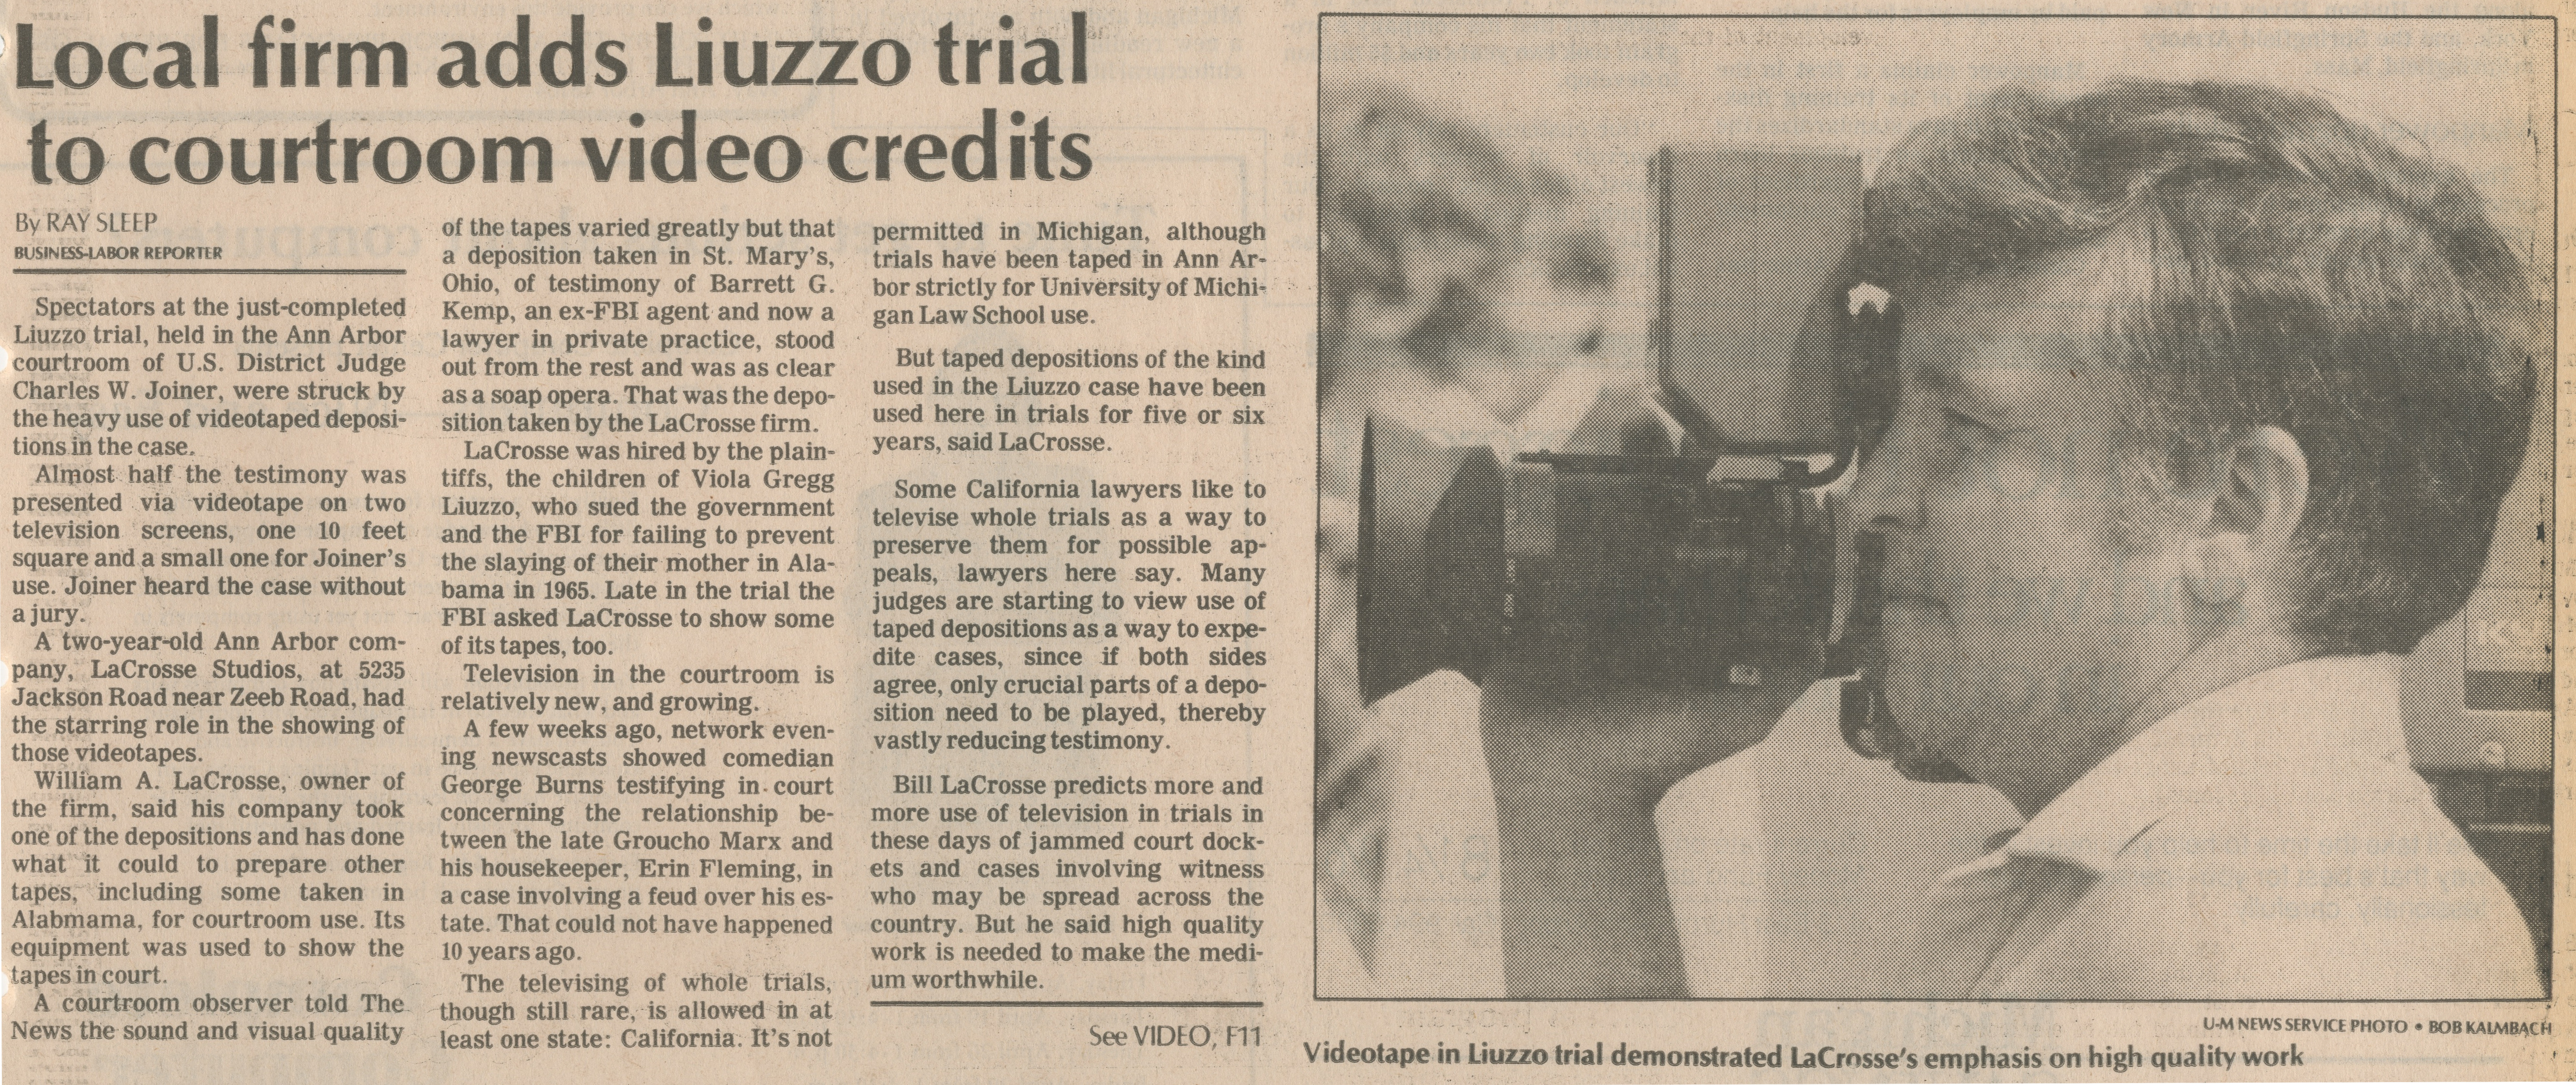 Local Firm Adds Liuzzo Trial To Courtroom Video Credits image